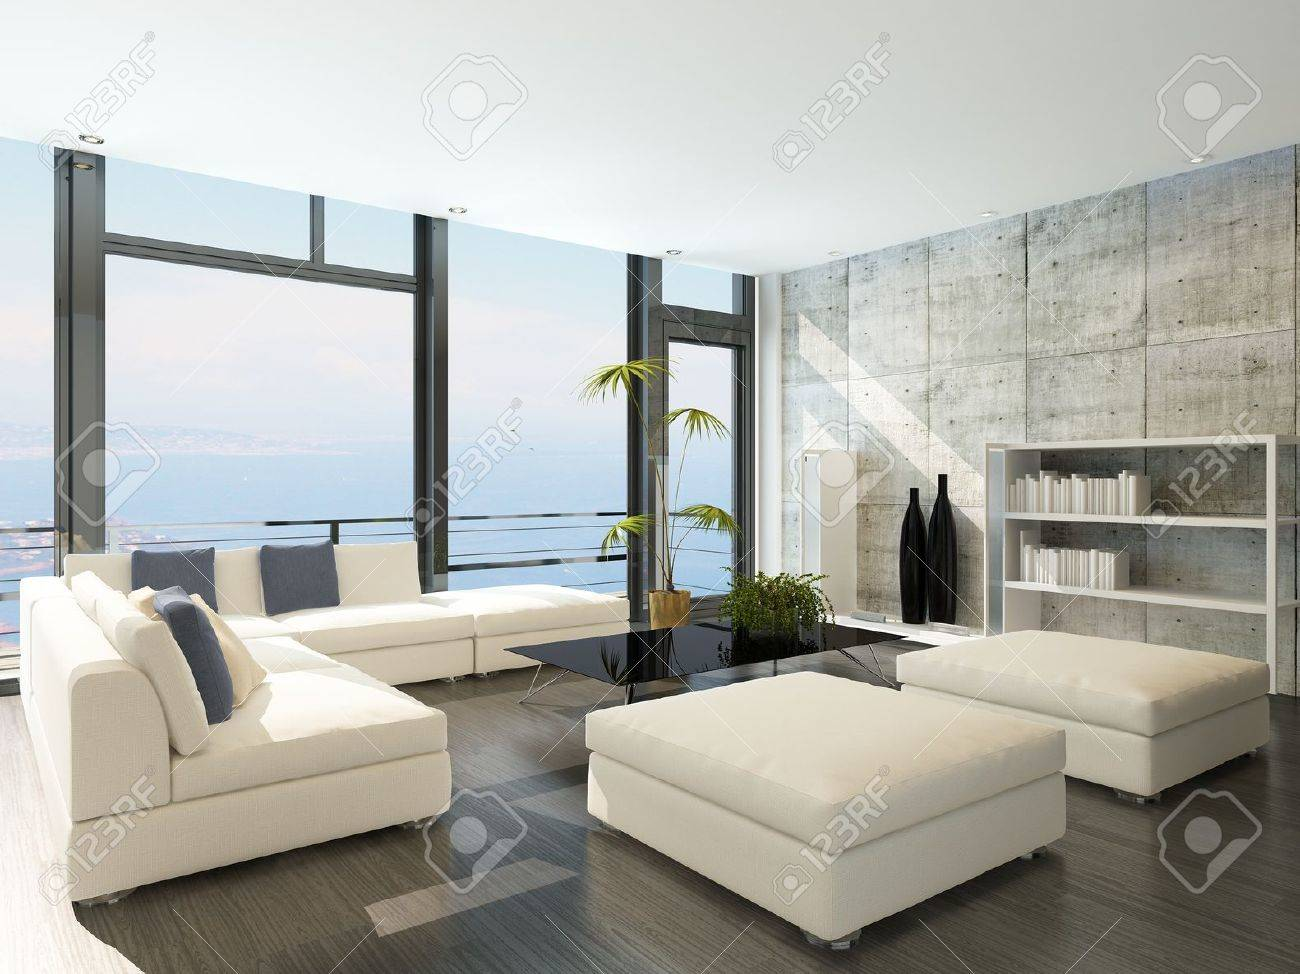 Modern Living Room With Huge Windows And Concrete Stone Wall Stock ...